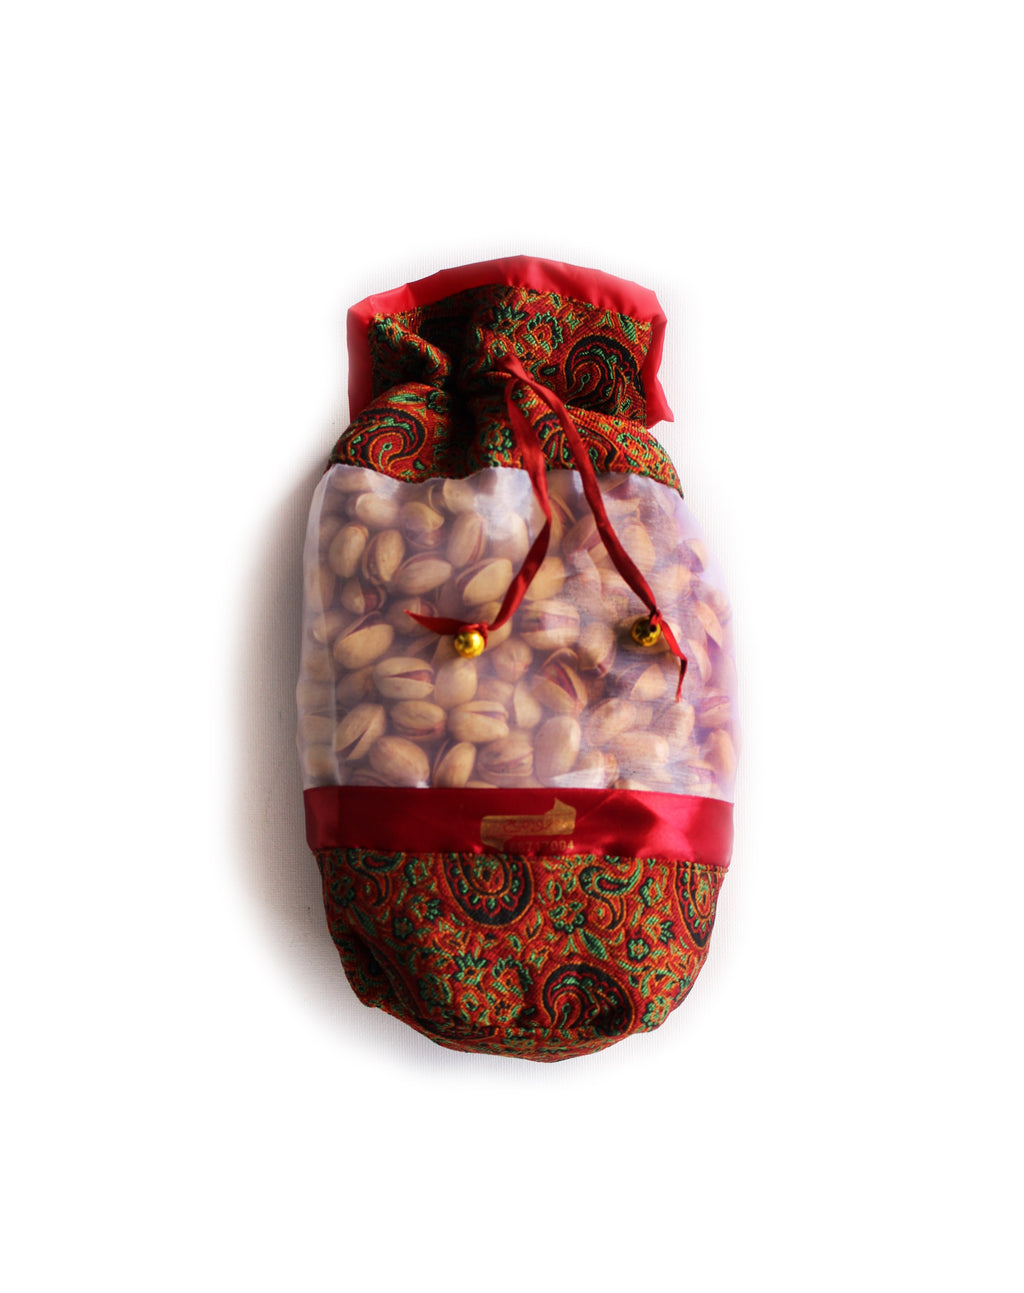 Tavazo's pistachio gift bag with 900 grams of the finesed pistt driachios we have to offer.